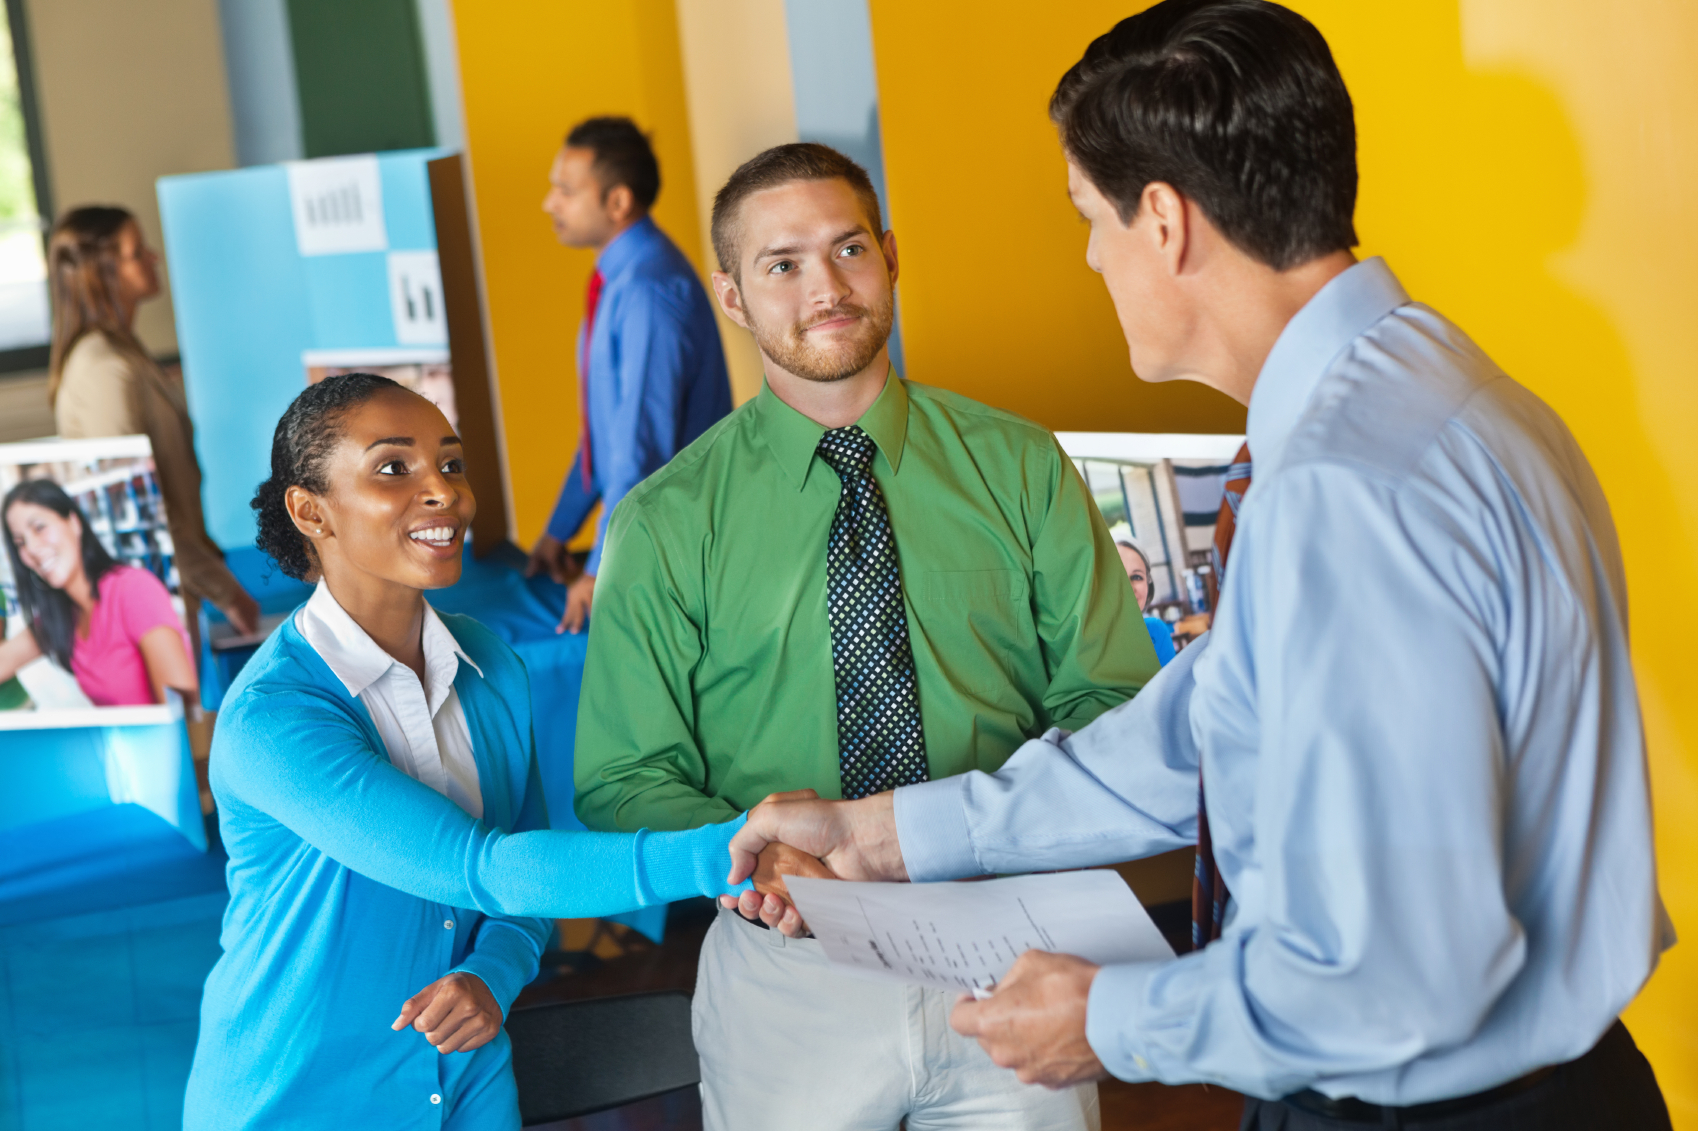 Recruitment event people shaking hands with employers